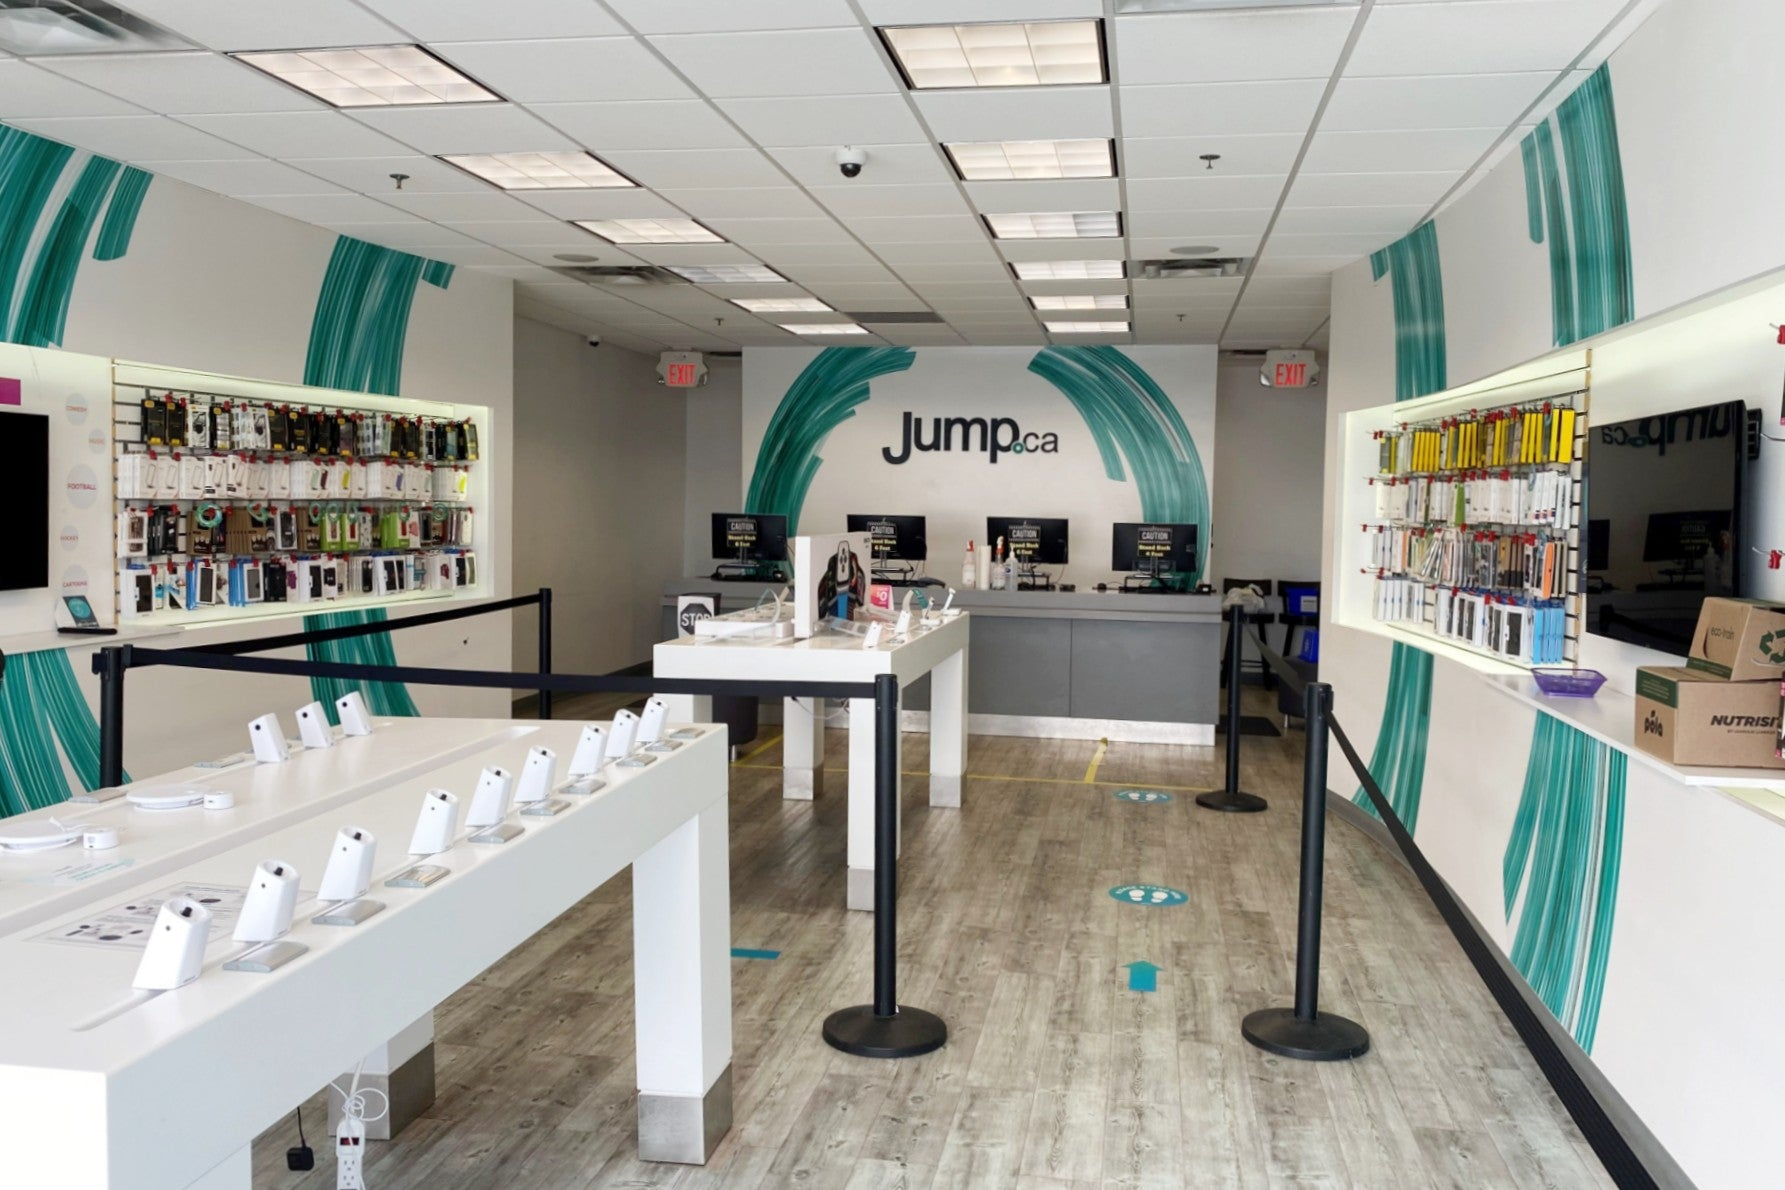 Photo of Normanview Crossing Jump.ca Store in Regina